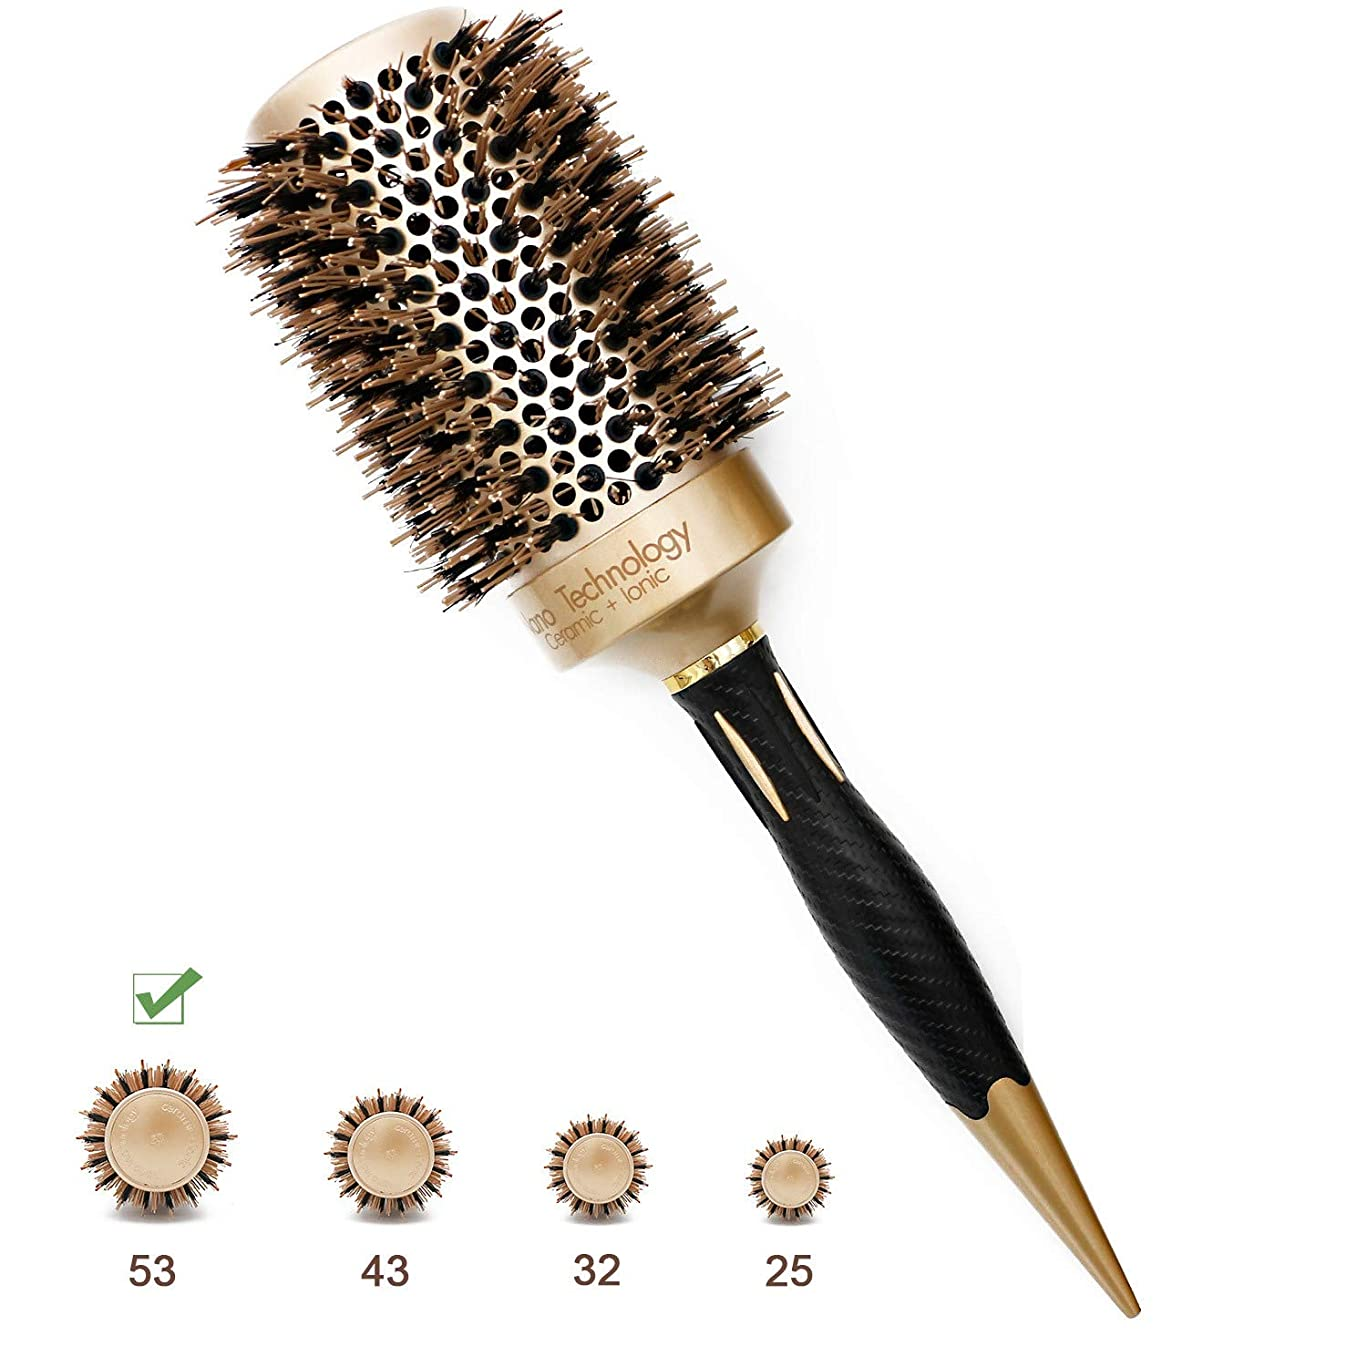 Barrel Round Hair Brush Nano Ionic Thermal Ceramic Boar Bristles Roller Hairbrush For Blow Drying, Curling, Straightening, Perfect Volume Shine (3.3